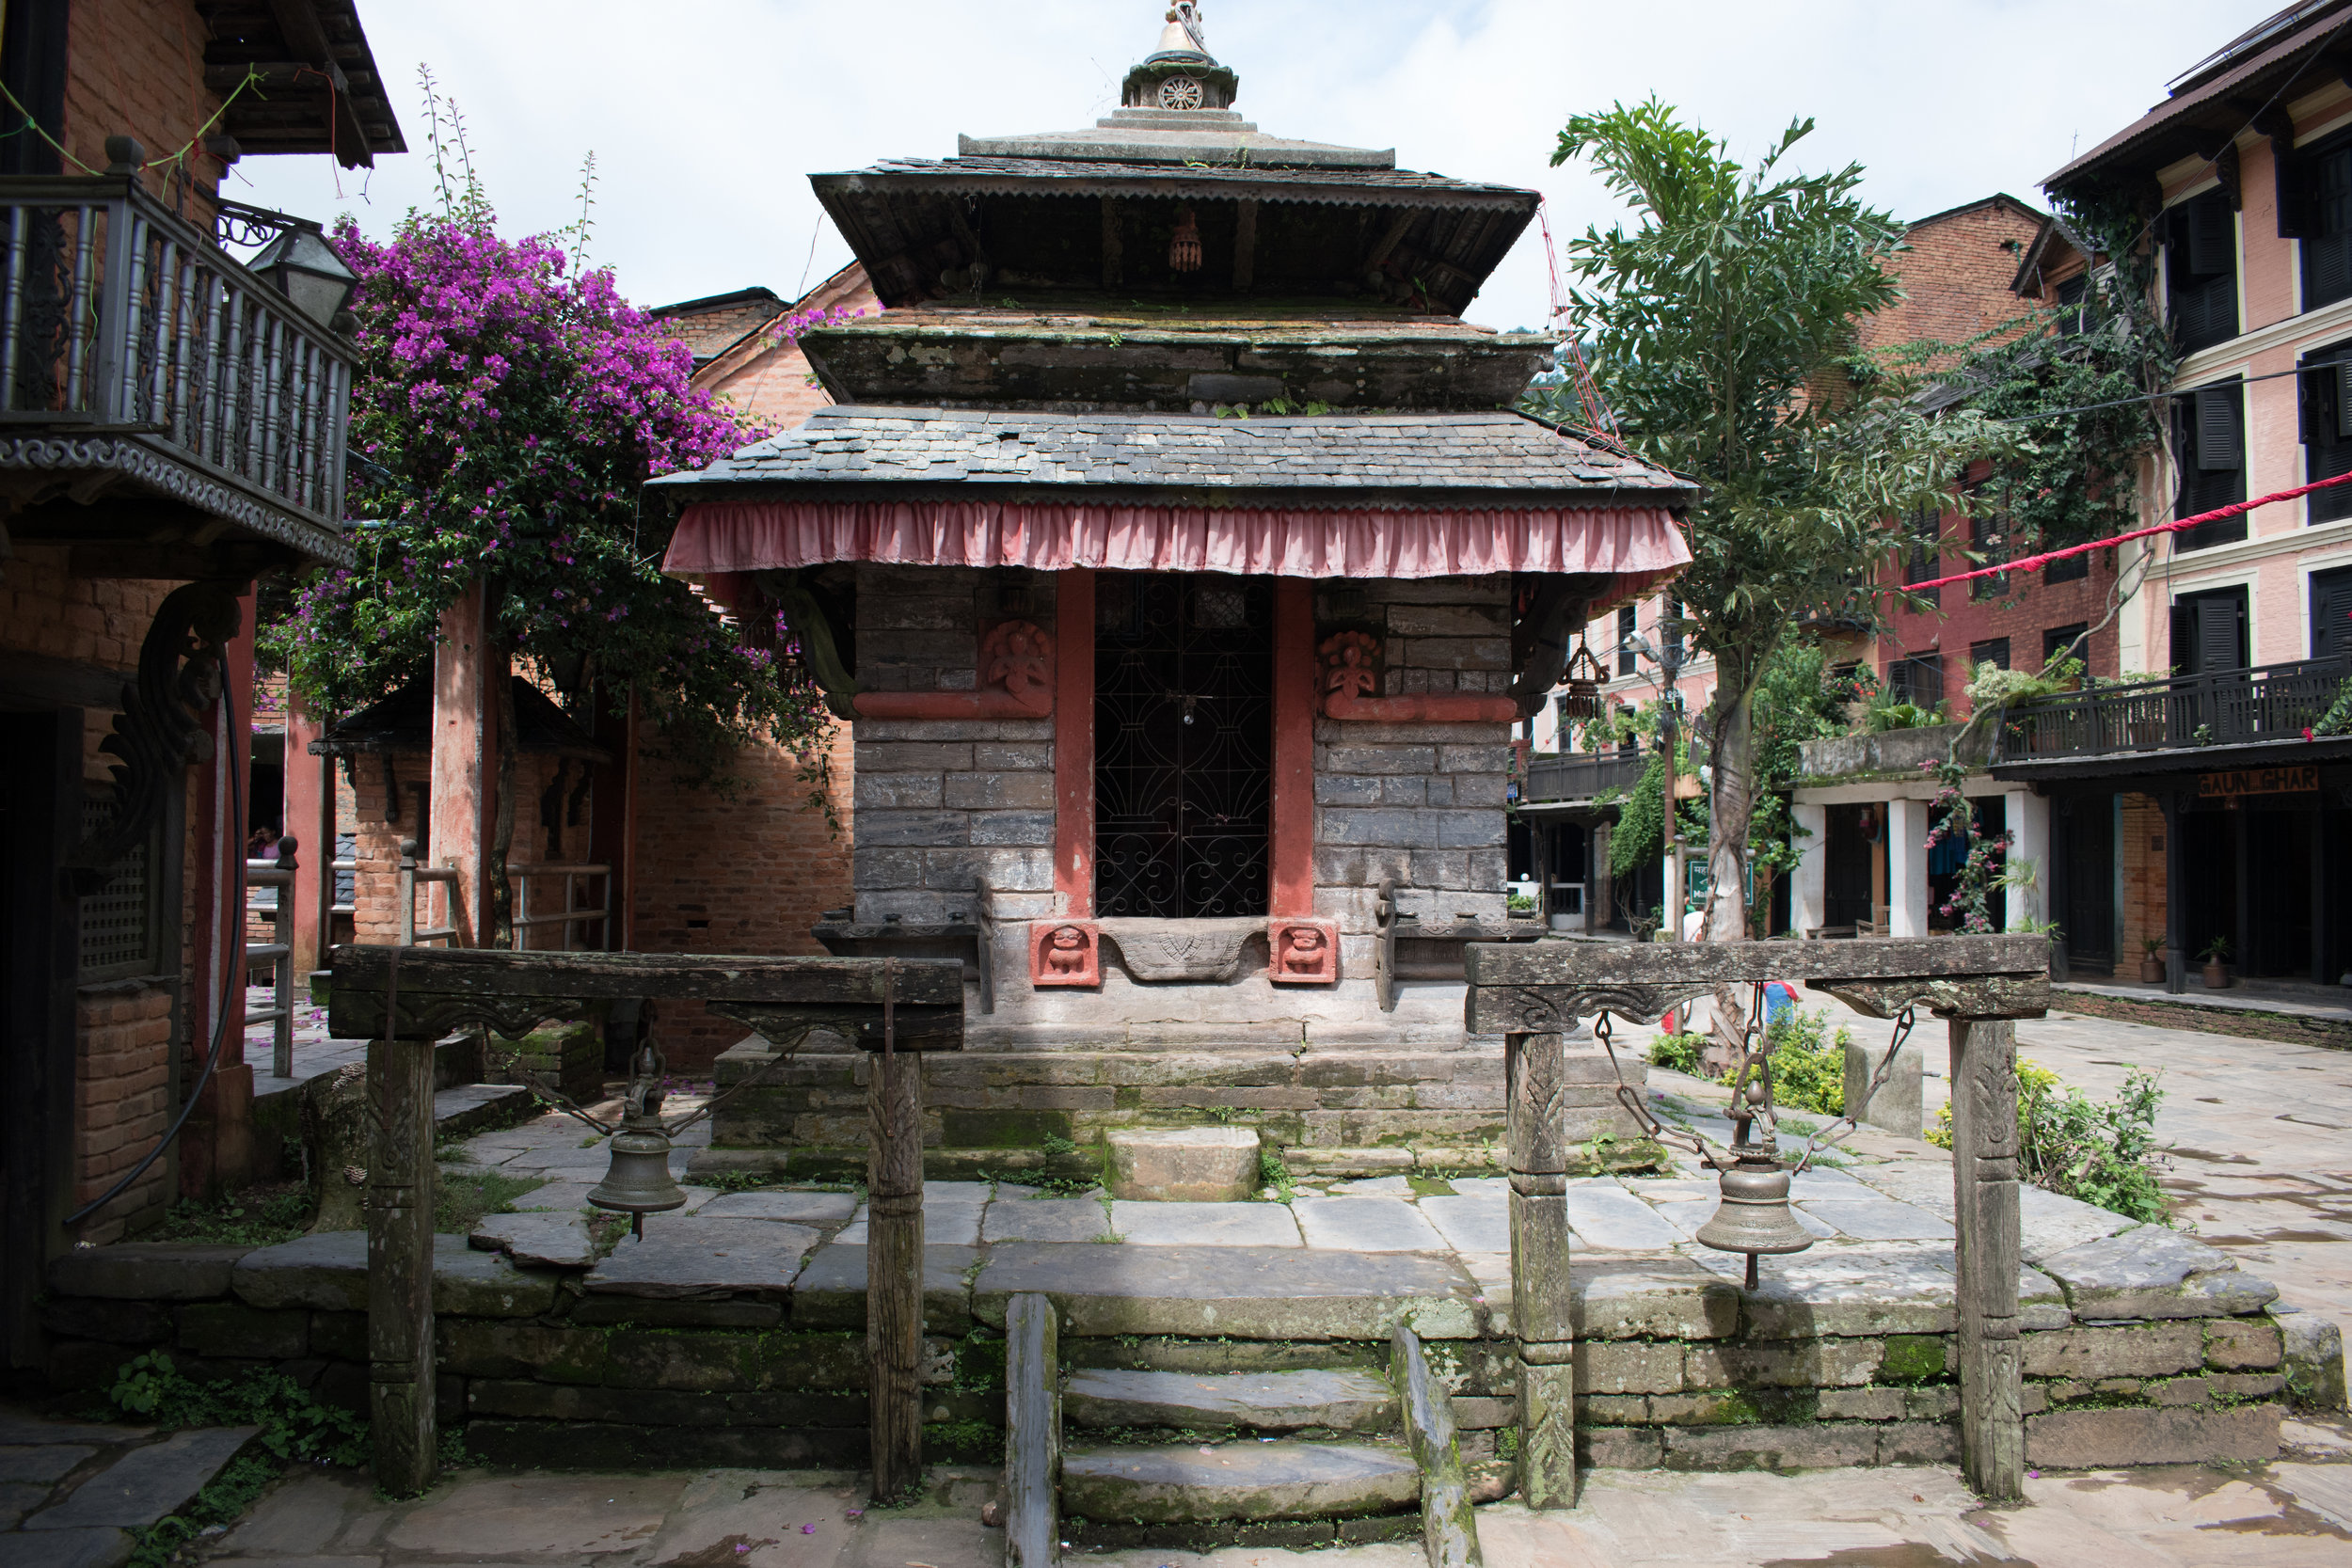 In The Centre Of The Village In Bandipur, Nepal